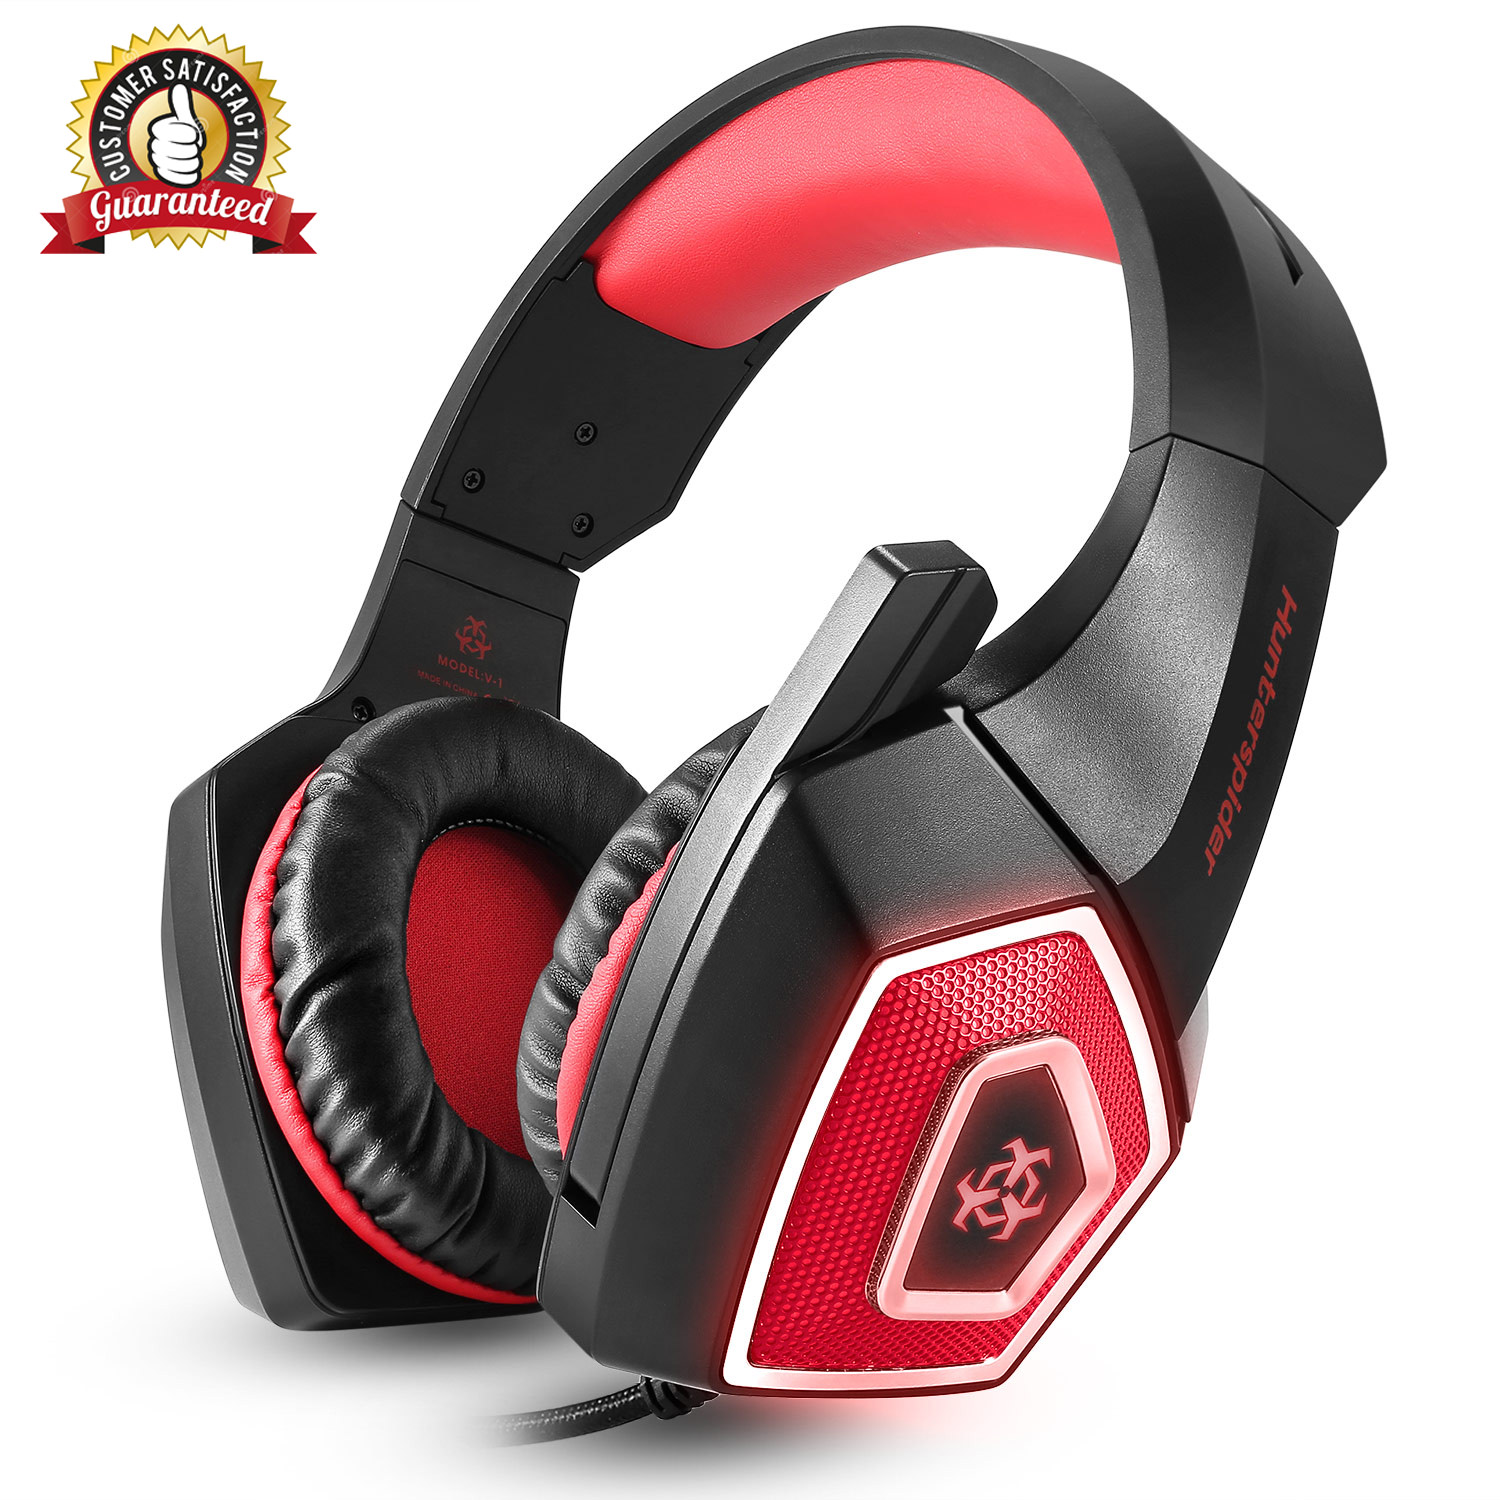 Hunterspider V1 Gaming Headset Best for Xbox One, PS4, PC - 7.1 Best Surround Stereo Sound, Noise Cancelling Mic, 3.5mm Soft Breathing Over-Ear Game Headphones